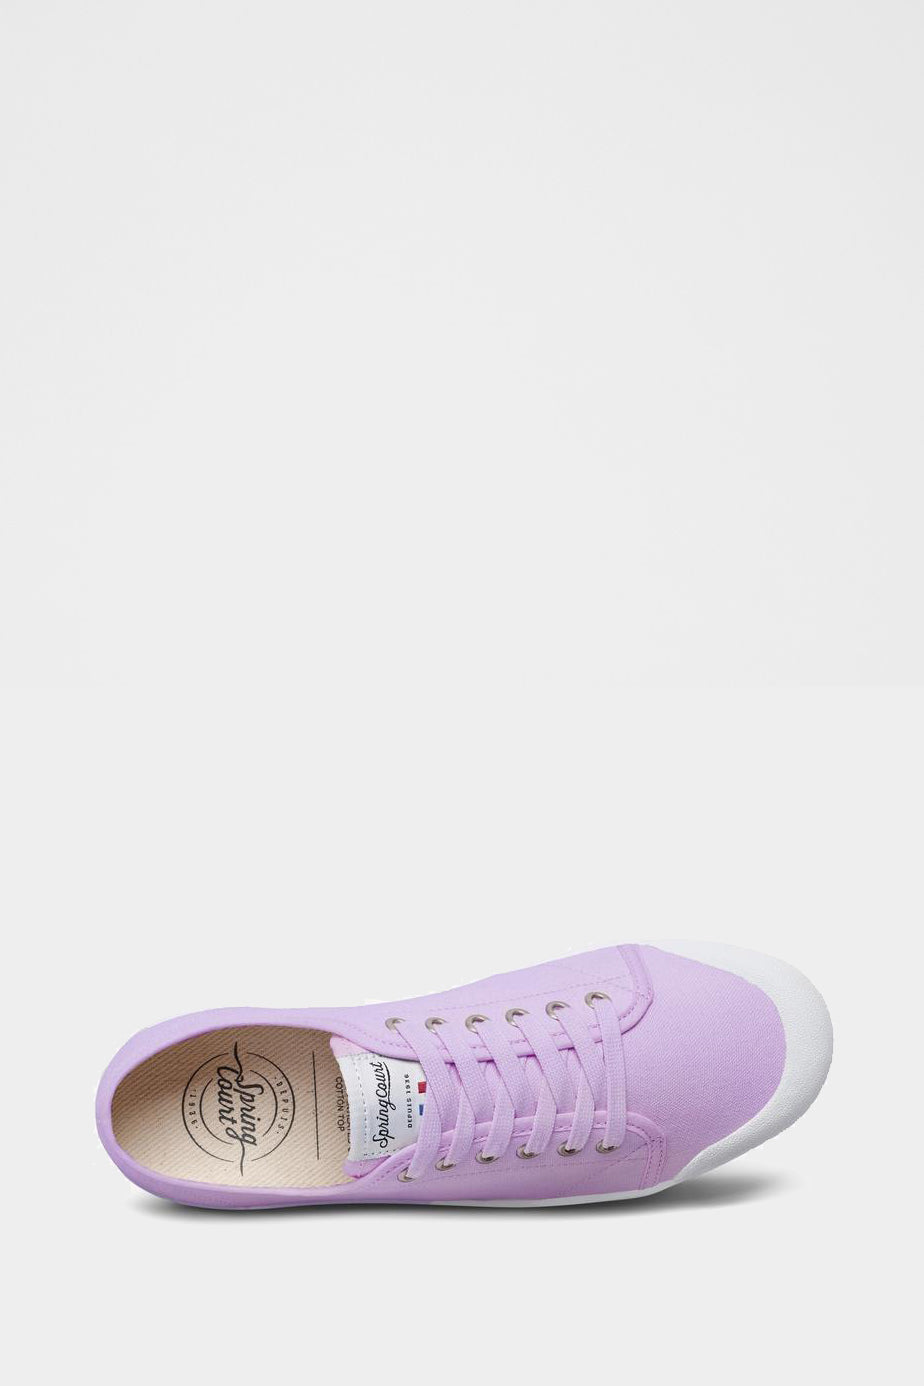 SPRINGCOURT - G2 Slim Canvas Sneaker online at PAYA boutique